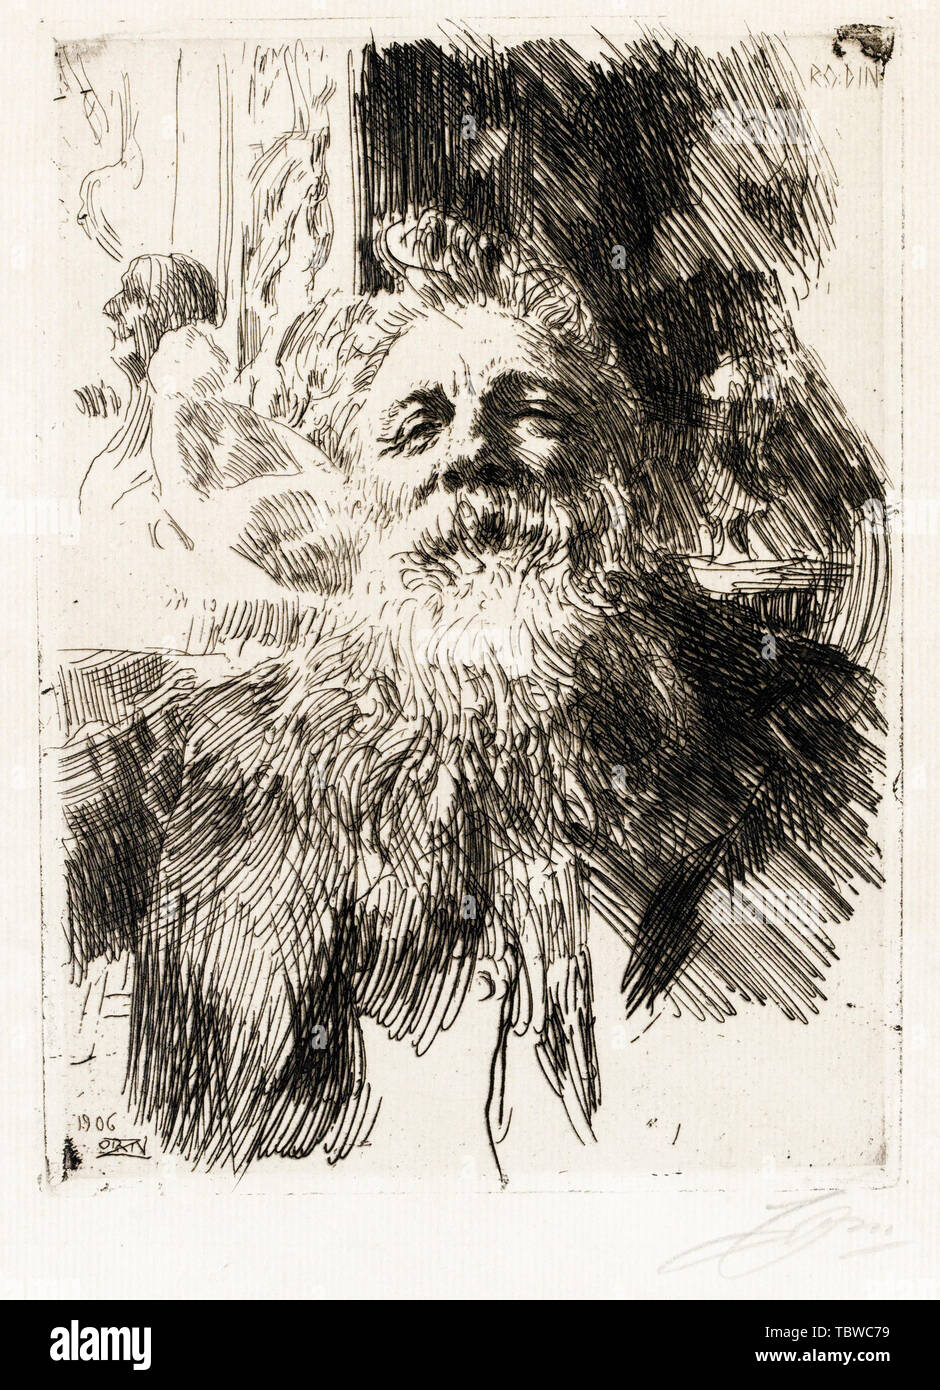 Auguste Rodin, Portrait of the artist, etching by Anders Zorn, 1906 - Stock Image